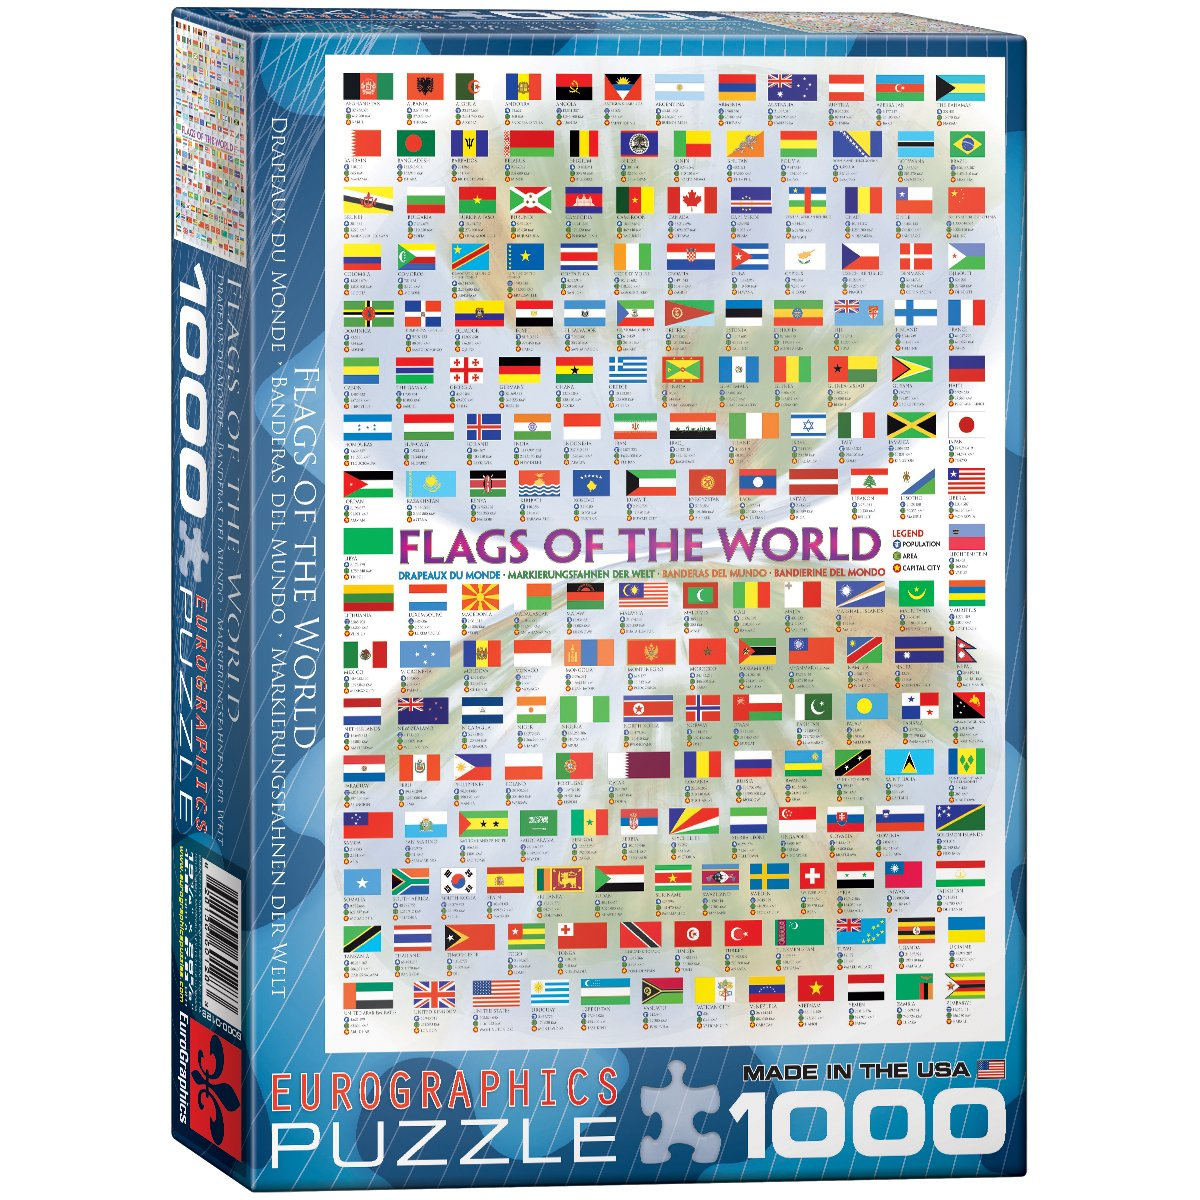 Eurographics flags of the world 1000 piece puzzle jigsaw puzzles eurographics flags of the world 1000 piece puzzle jigsaw puzzles amazon canada gamestrikefo Images